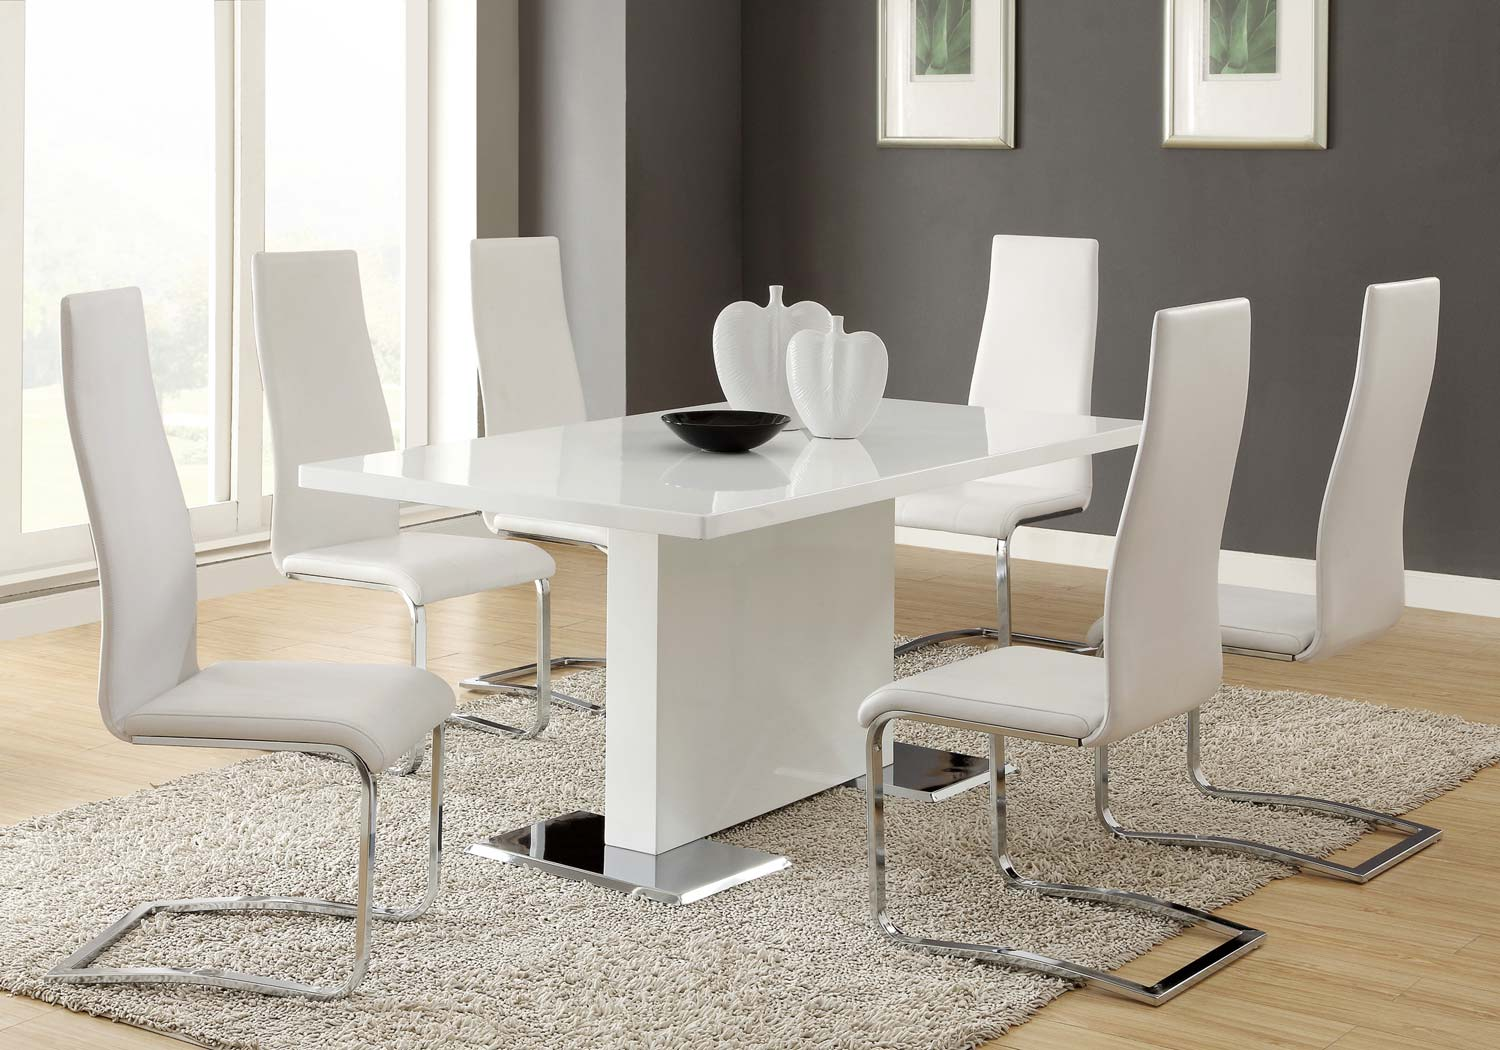 Coaster Mix & Match White Dining Set - White Chair